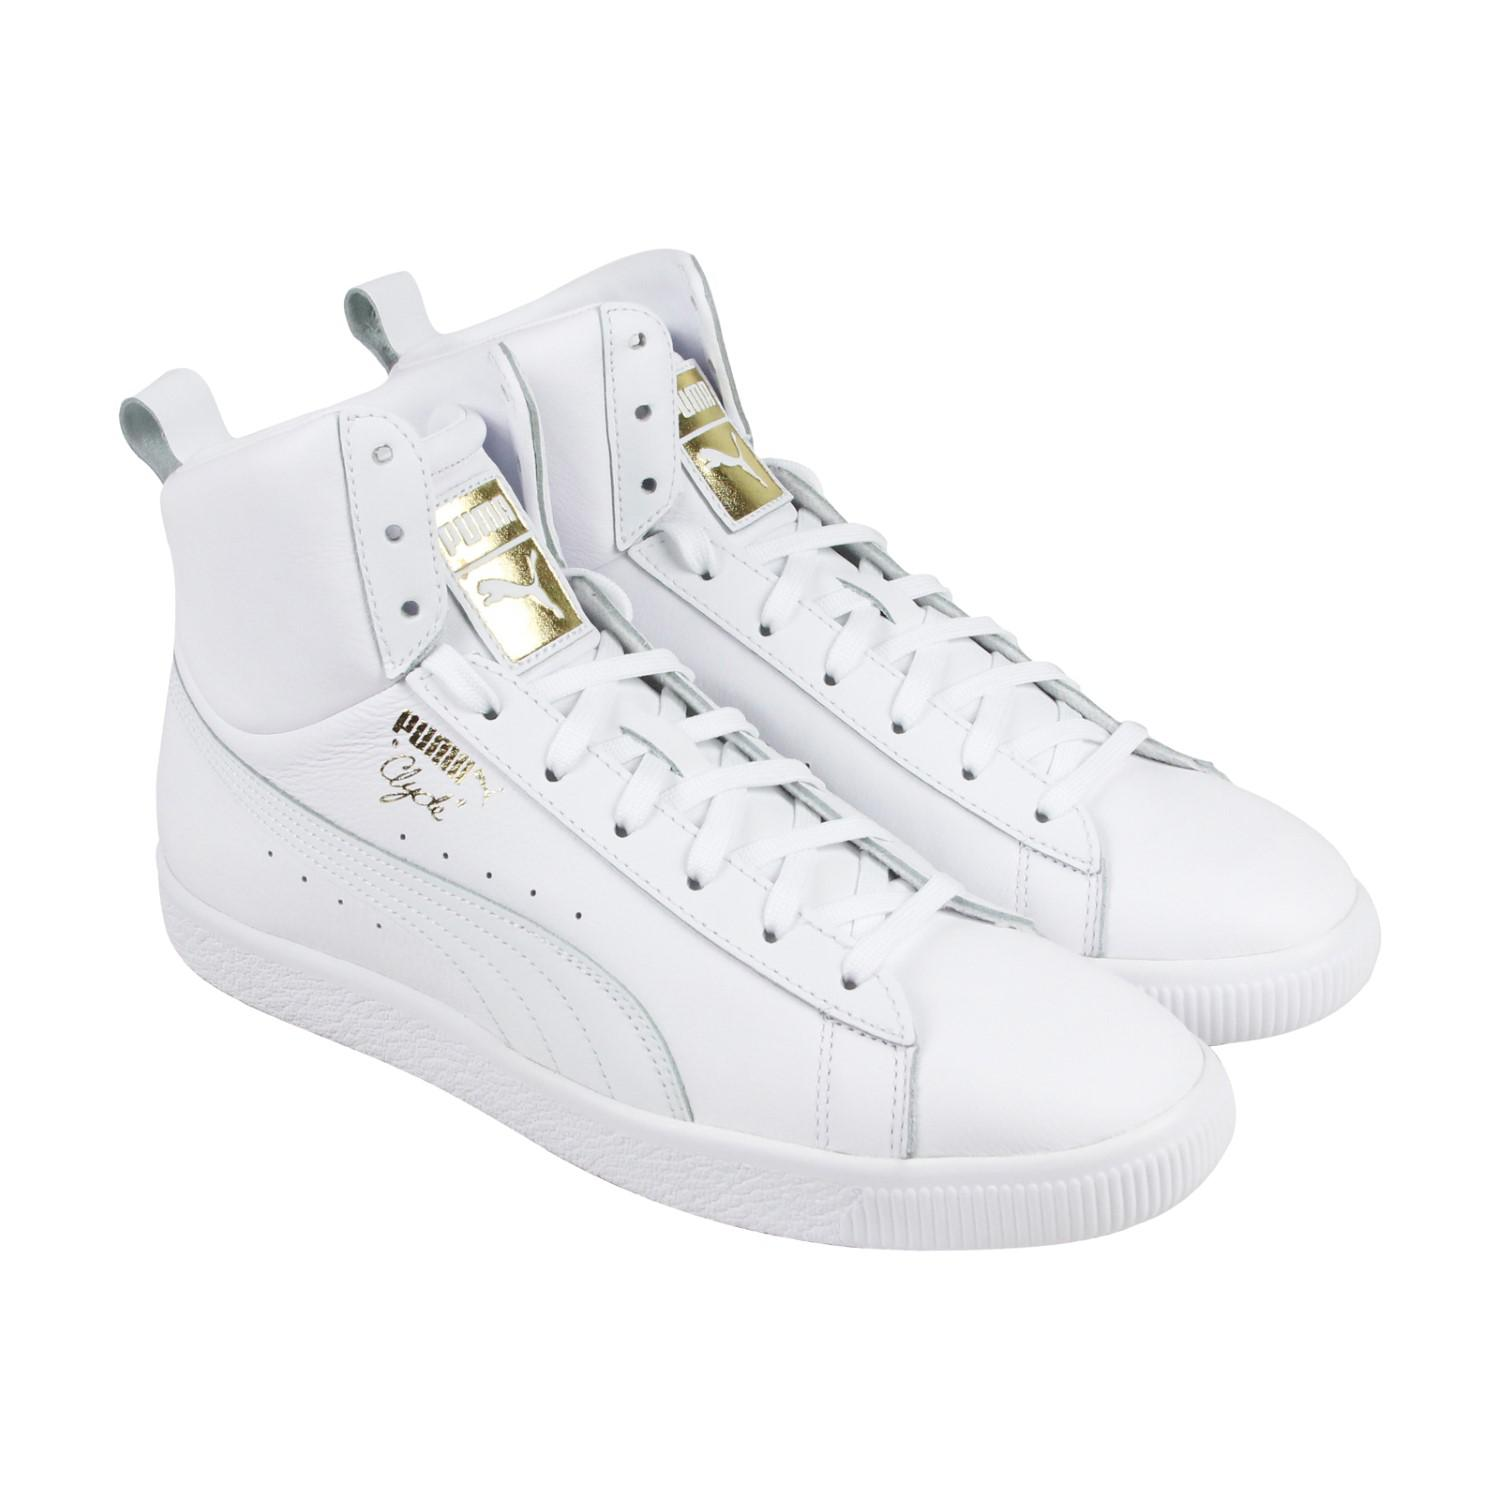 Lyst - PUMA Clyde Mid Core Foil White Mens High Top Sneakers in ... 88f8e2ee5